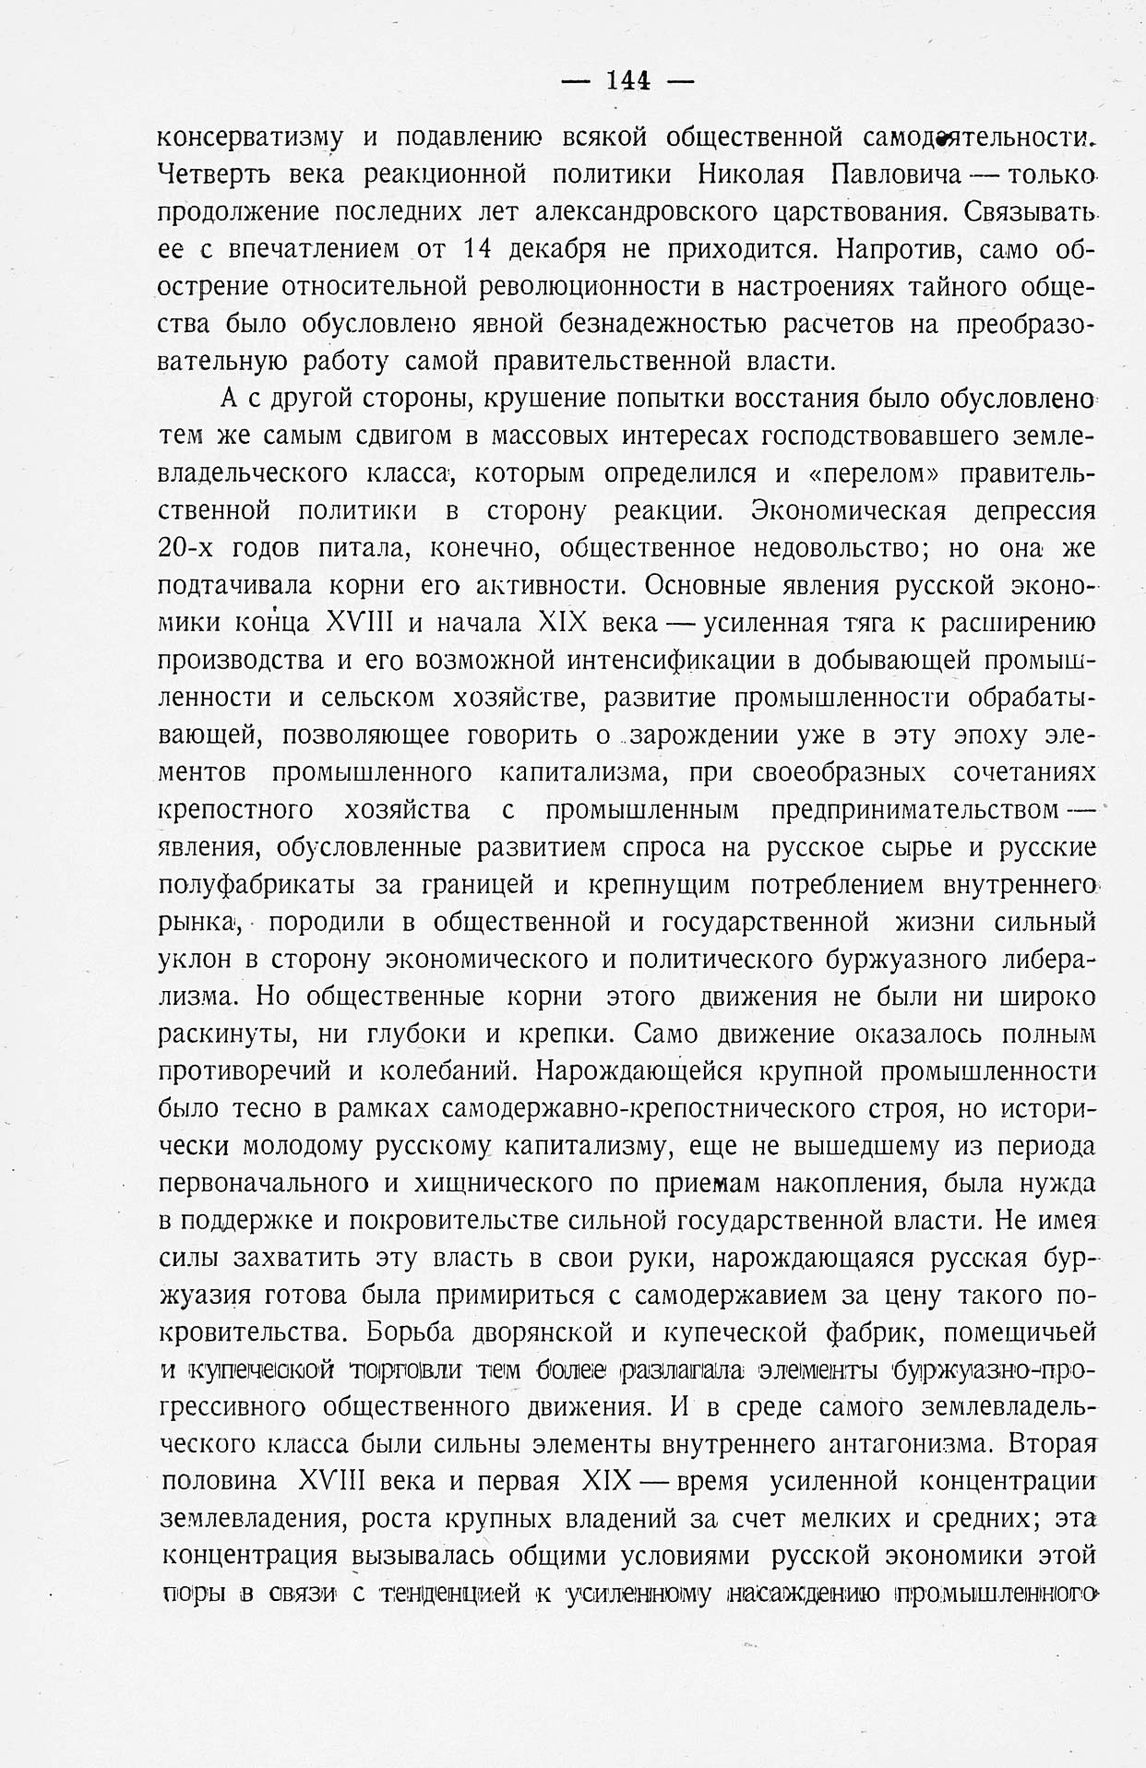 http://elib.shpl.ru/pages/566041/zooms/7